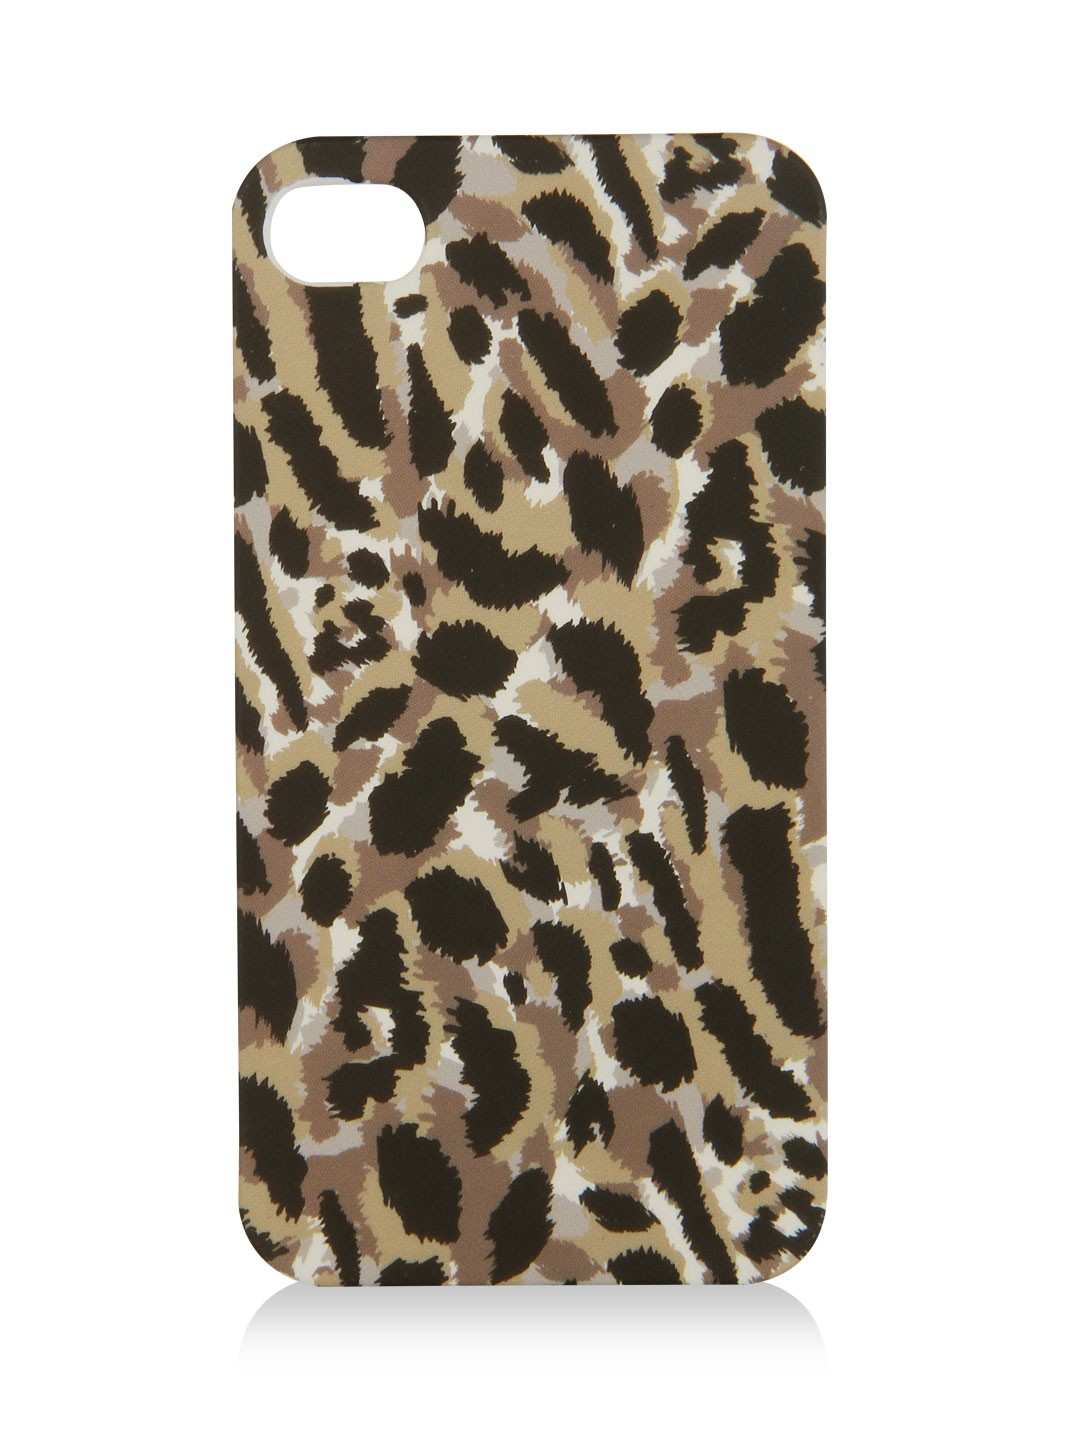 Personalize and protect your device with Animal Print designs. BUY ONE GET ONE 50% OFF CASES & SKINS. Leopard iPhone Cases. Starting at $ Shop It. View More ; Galaxy Cases View All.